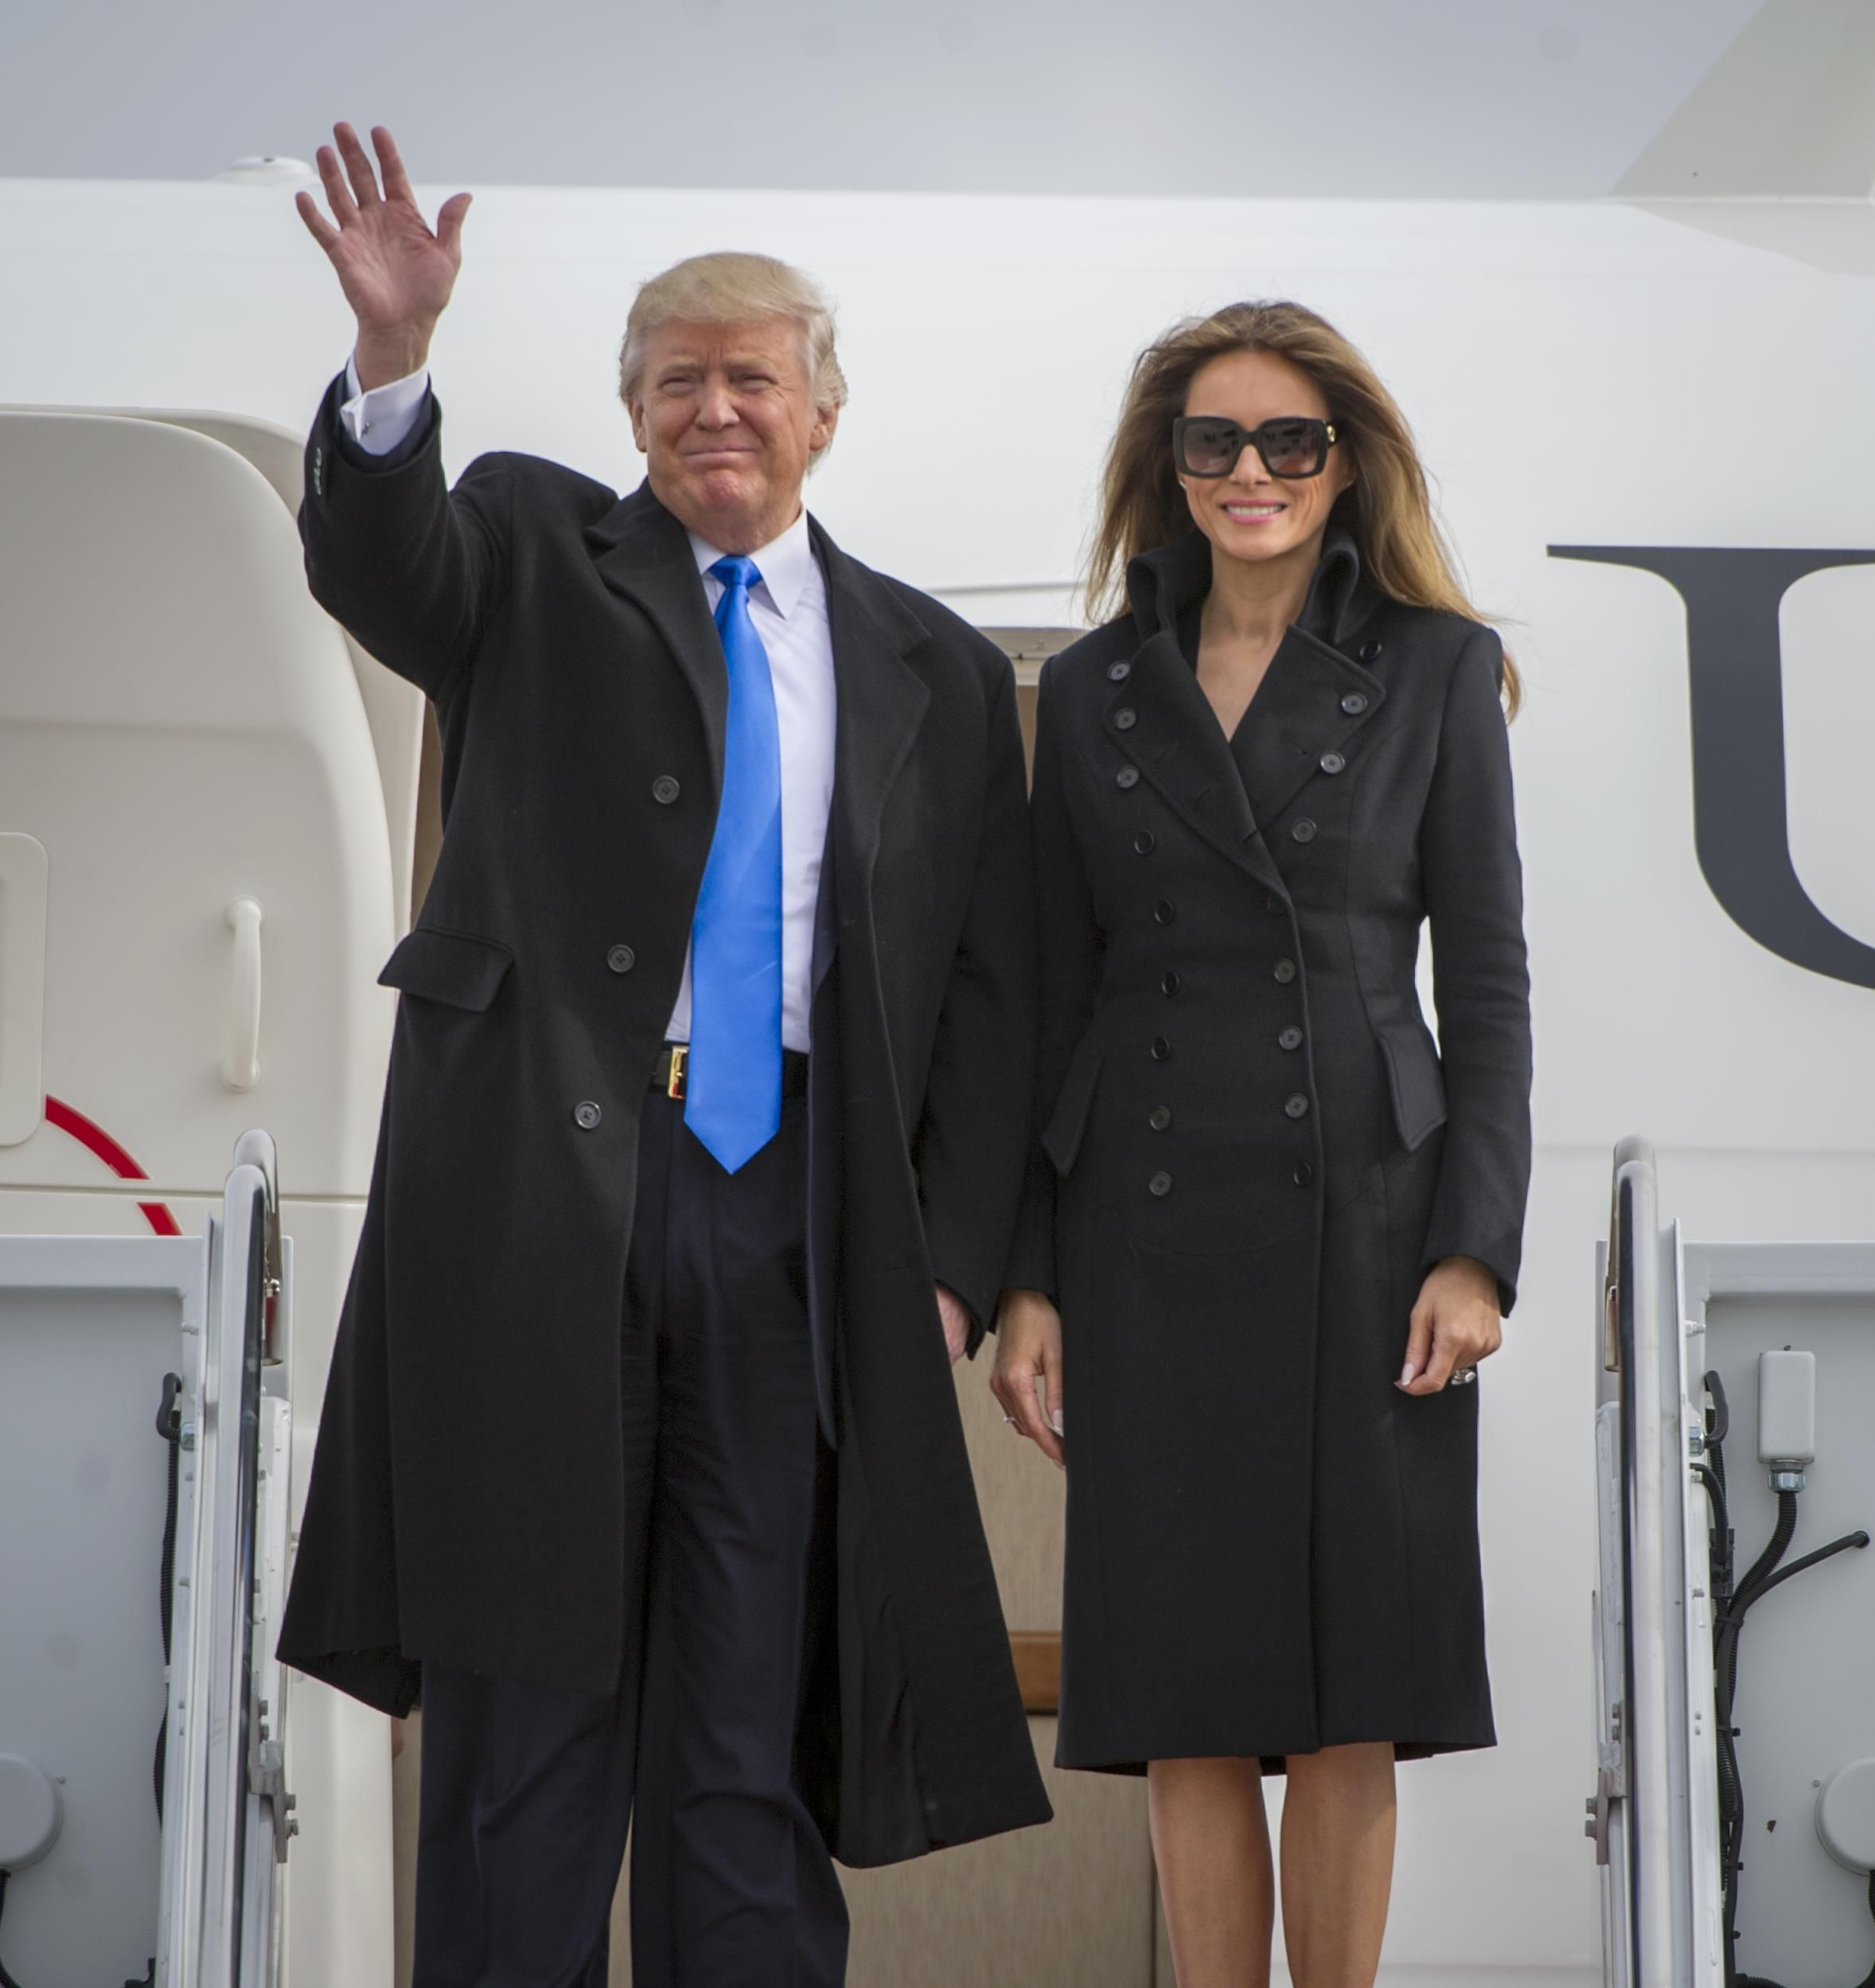 Donald Trump and Melania deplaning